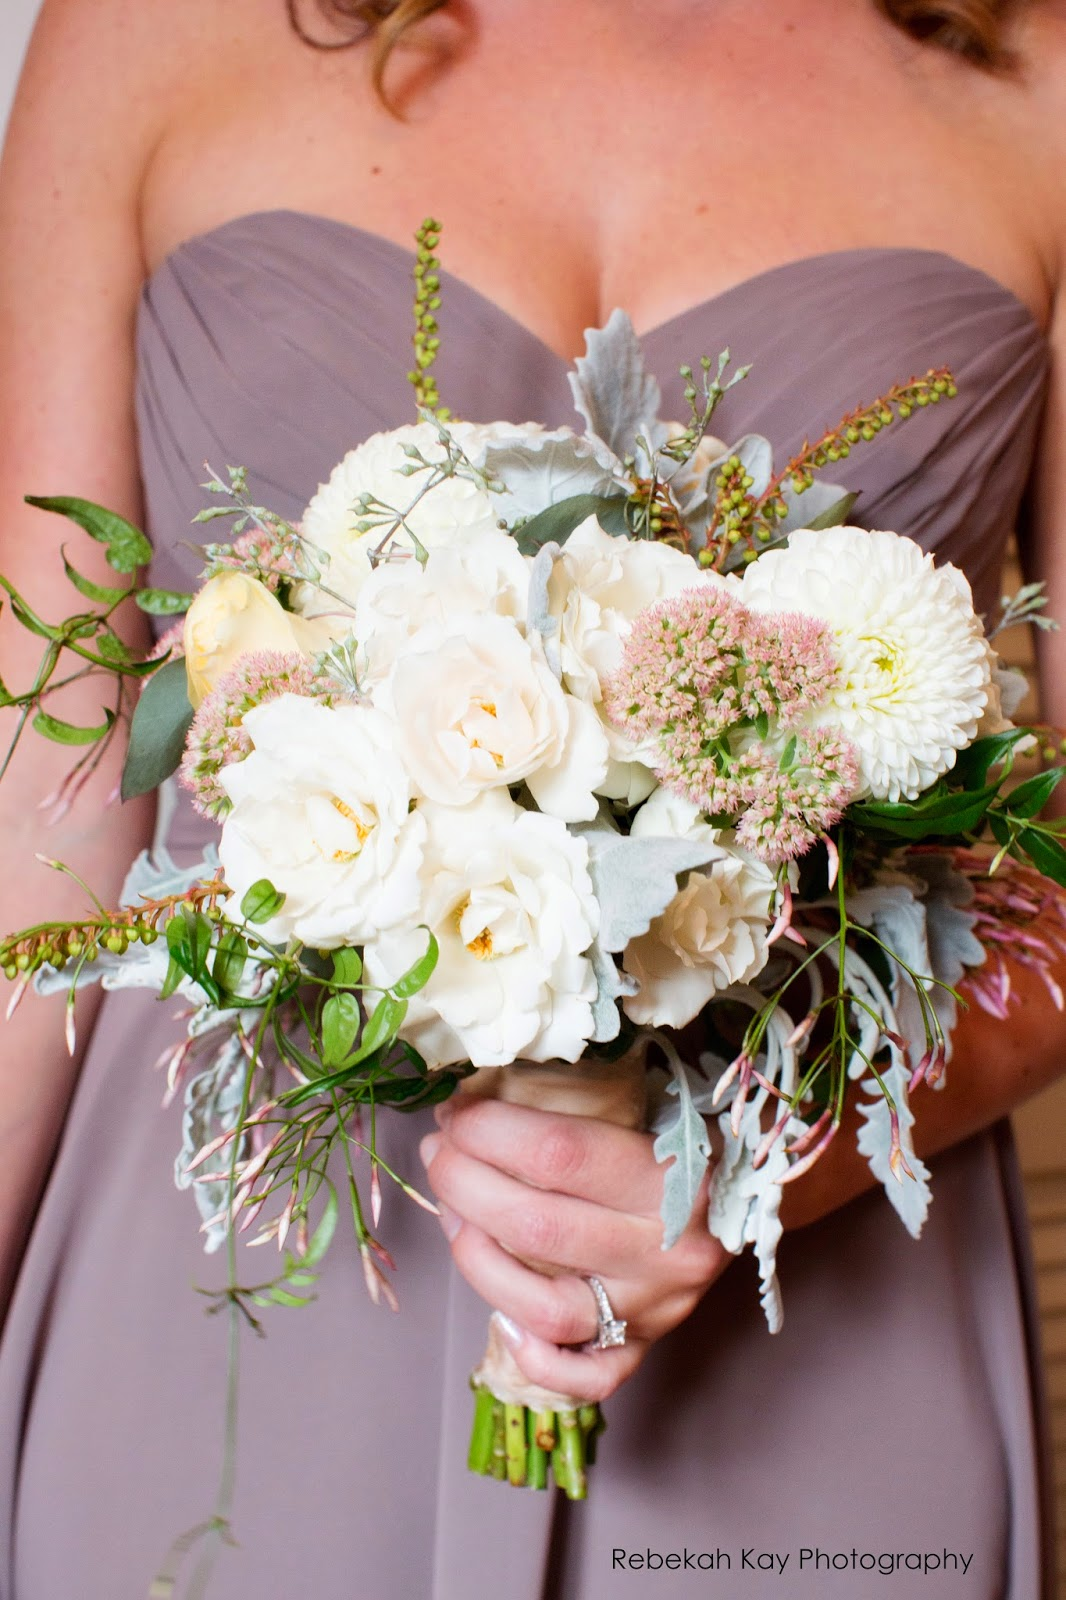 les fleurs : fall wedding : boston harbor hotel : latte bridesmaid dresses : romantic bouquets : sedum, dusty miller, dahlia, andromedia, roses : broach on bouquet stems